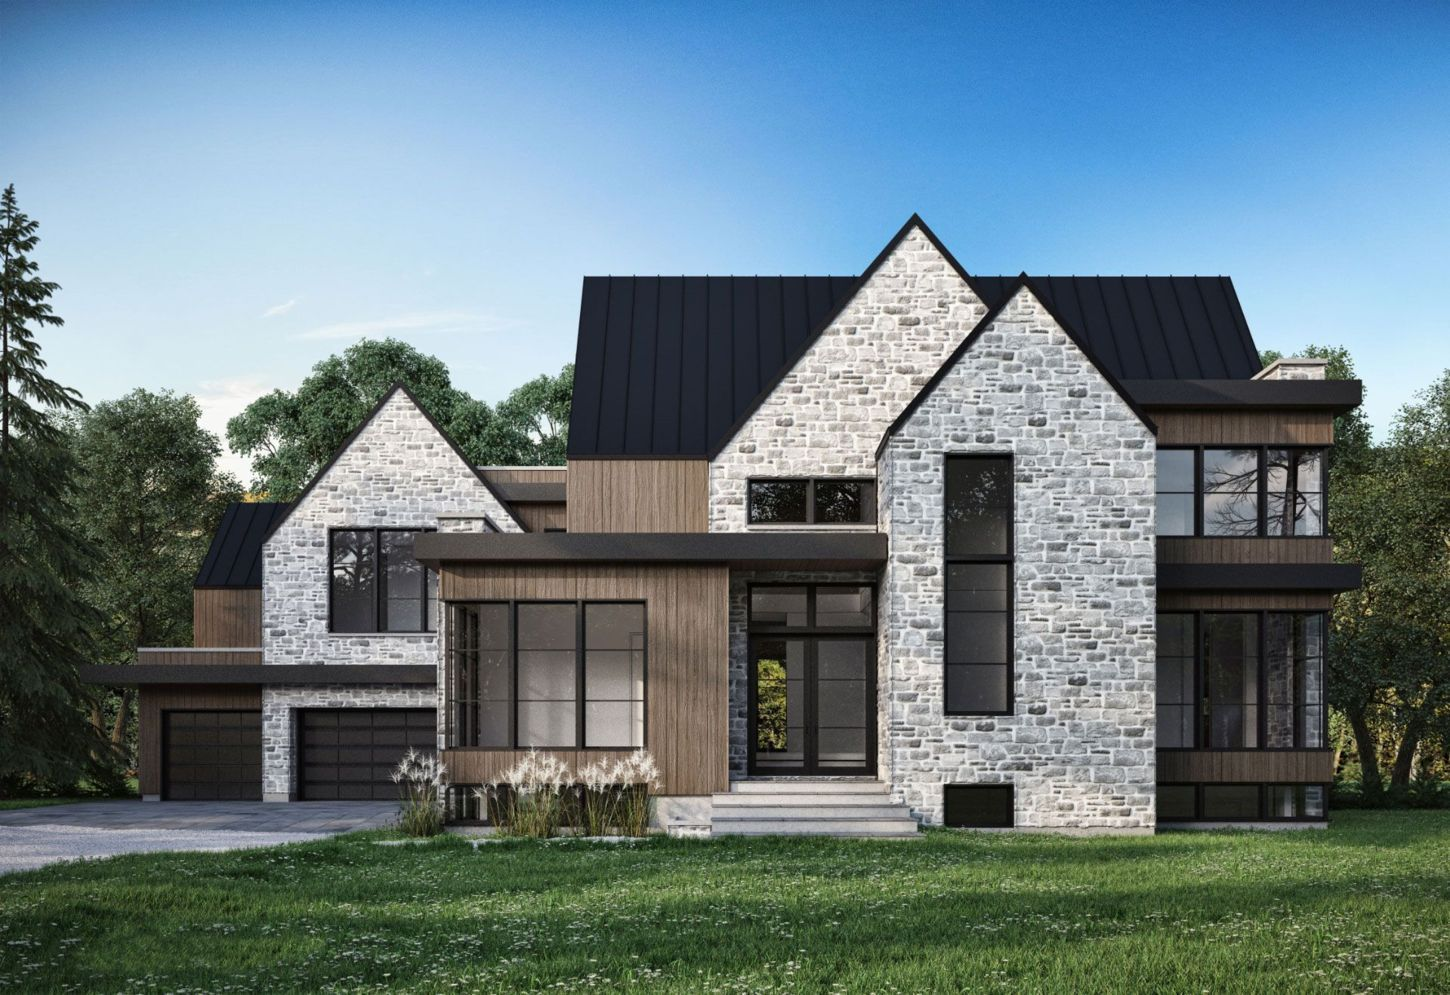 Modern Farmhouse Exterior Designs Displaying Classic Comfort in Today Style | SHAIROOM.COM #modernfarmhouseexterior